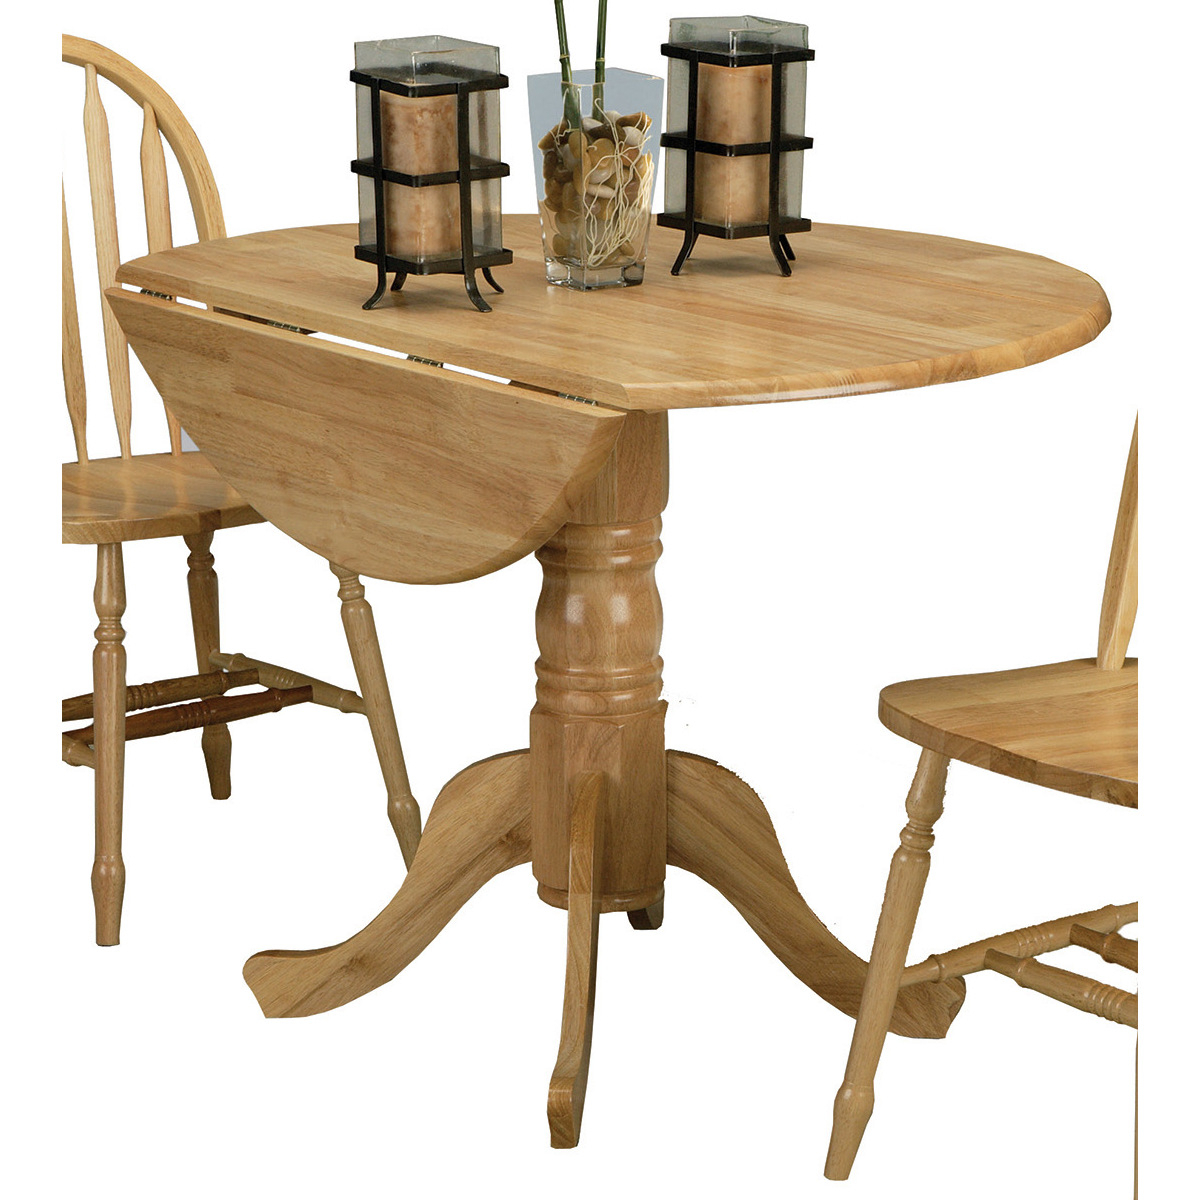 Most Recent 5140nadt Drop Leaf Pedestal Table Intended For Boothby Drop Leaf Rubberwood Solid Wood Pedestal Dining Tables (View 13 of 20)